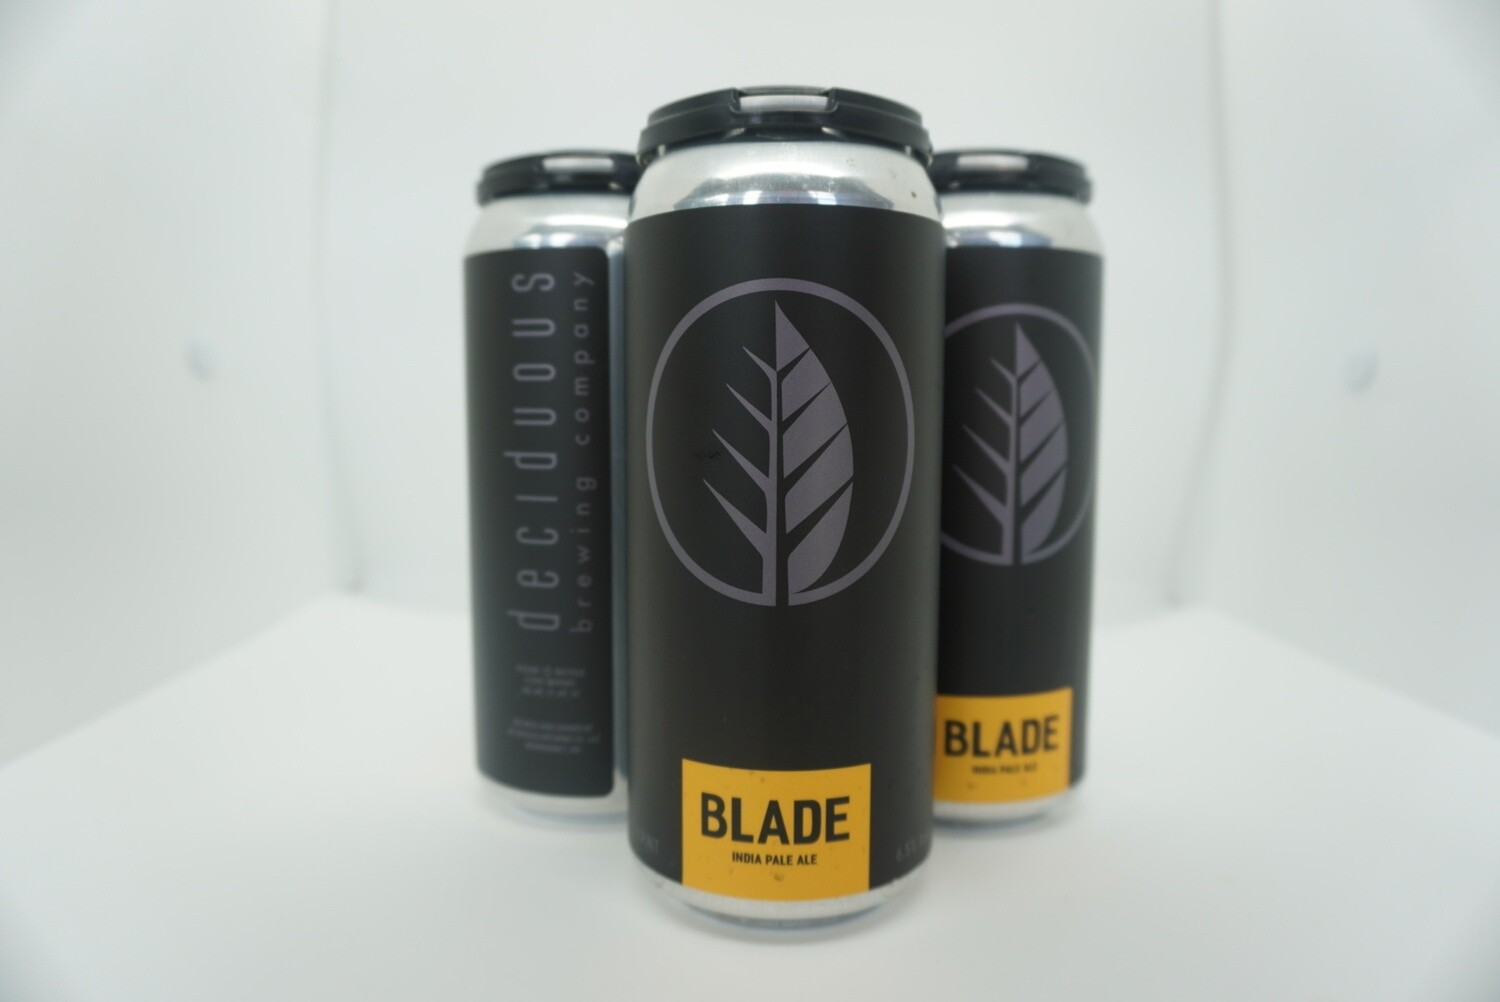 Deciduous - Blade - NEIPA - 6.5% ABV - 4 Pack